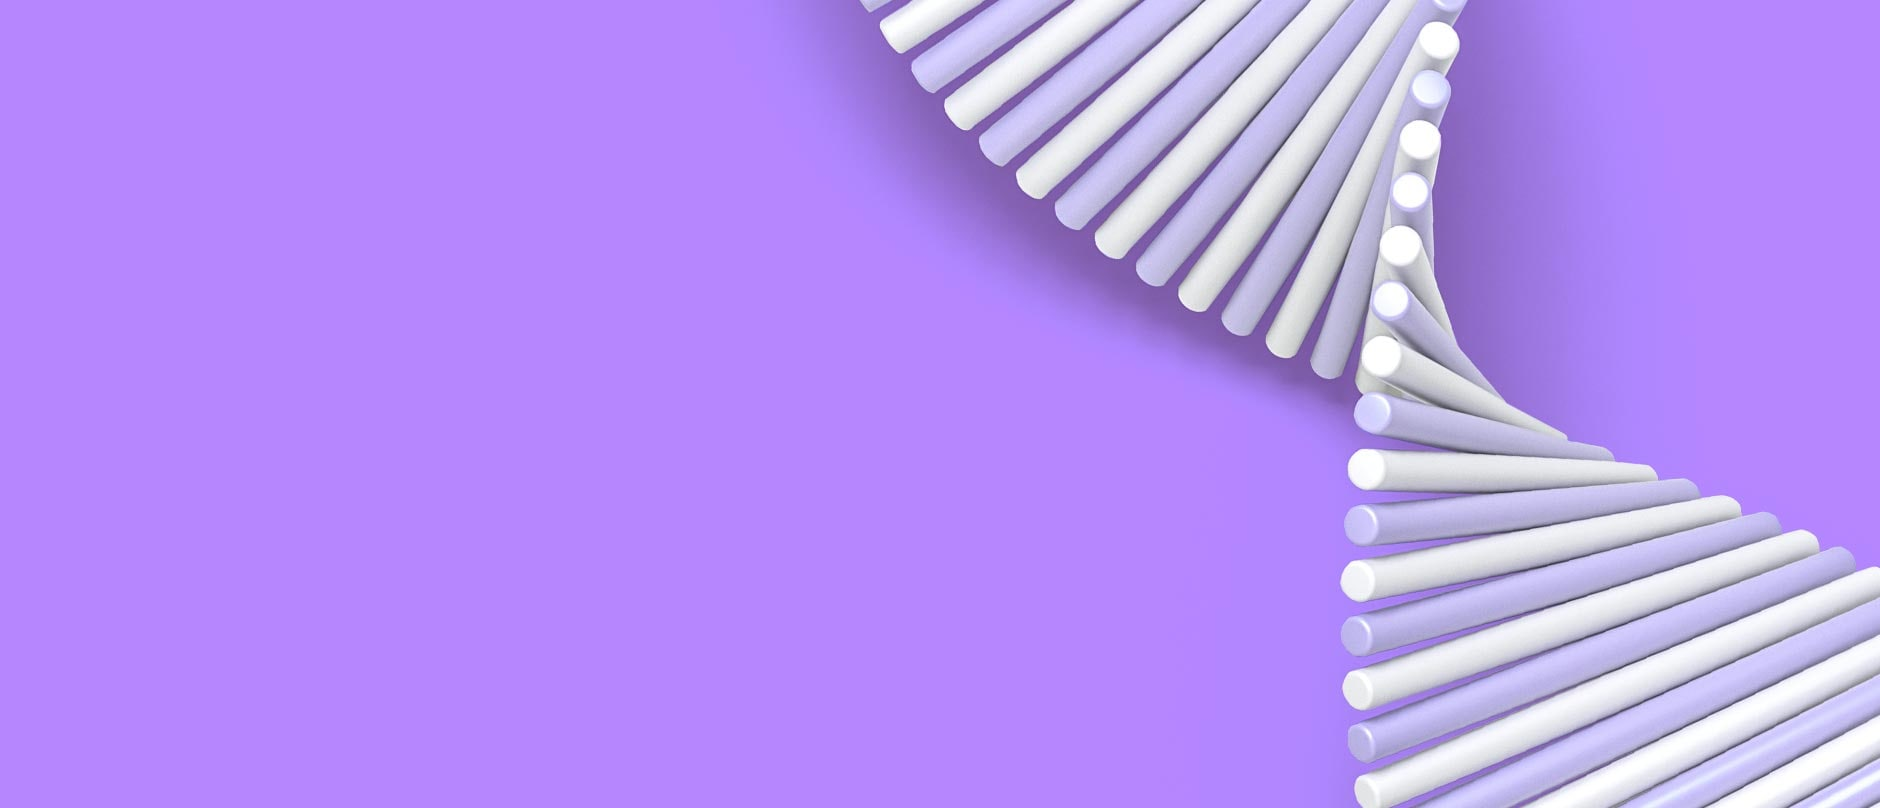 Purple and white lines creating the shape if DNA on a purple background